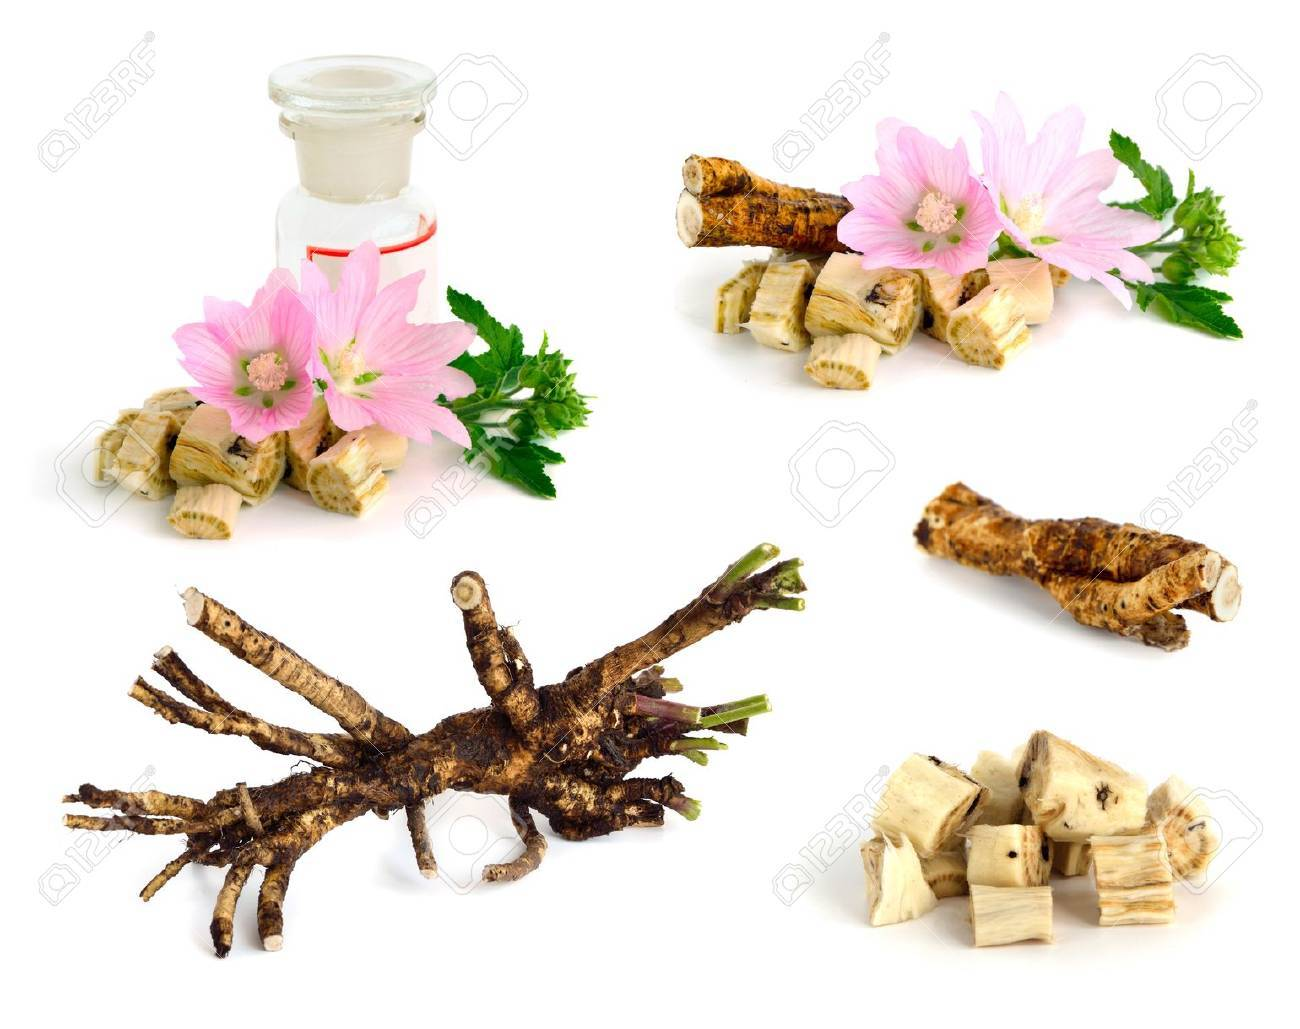 Flowers and roots Althaea (genus) on white background. Stock Photo - 20380034